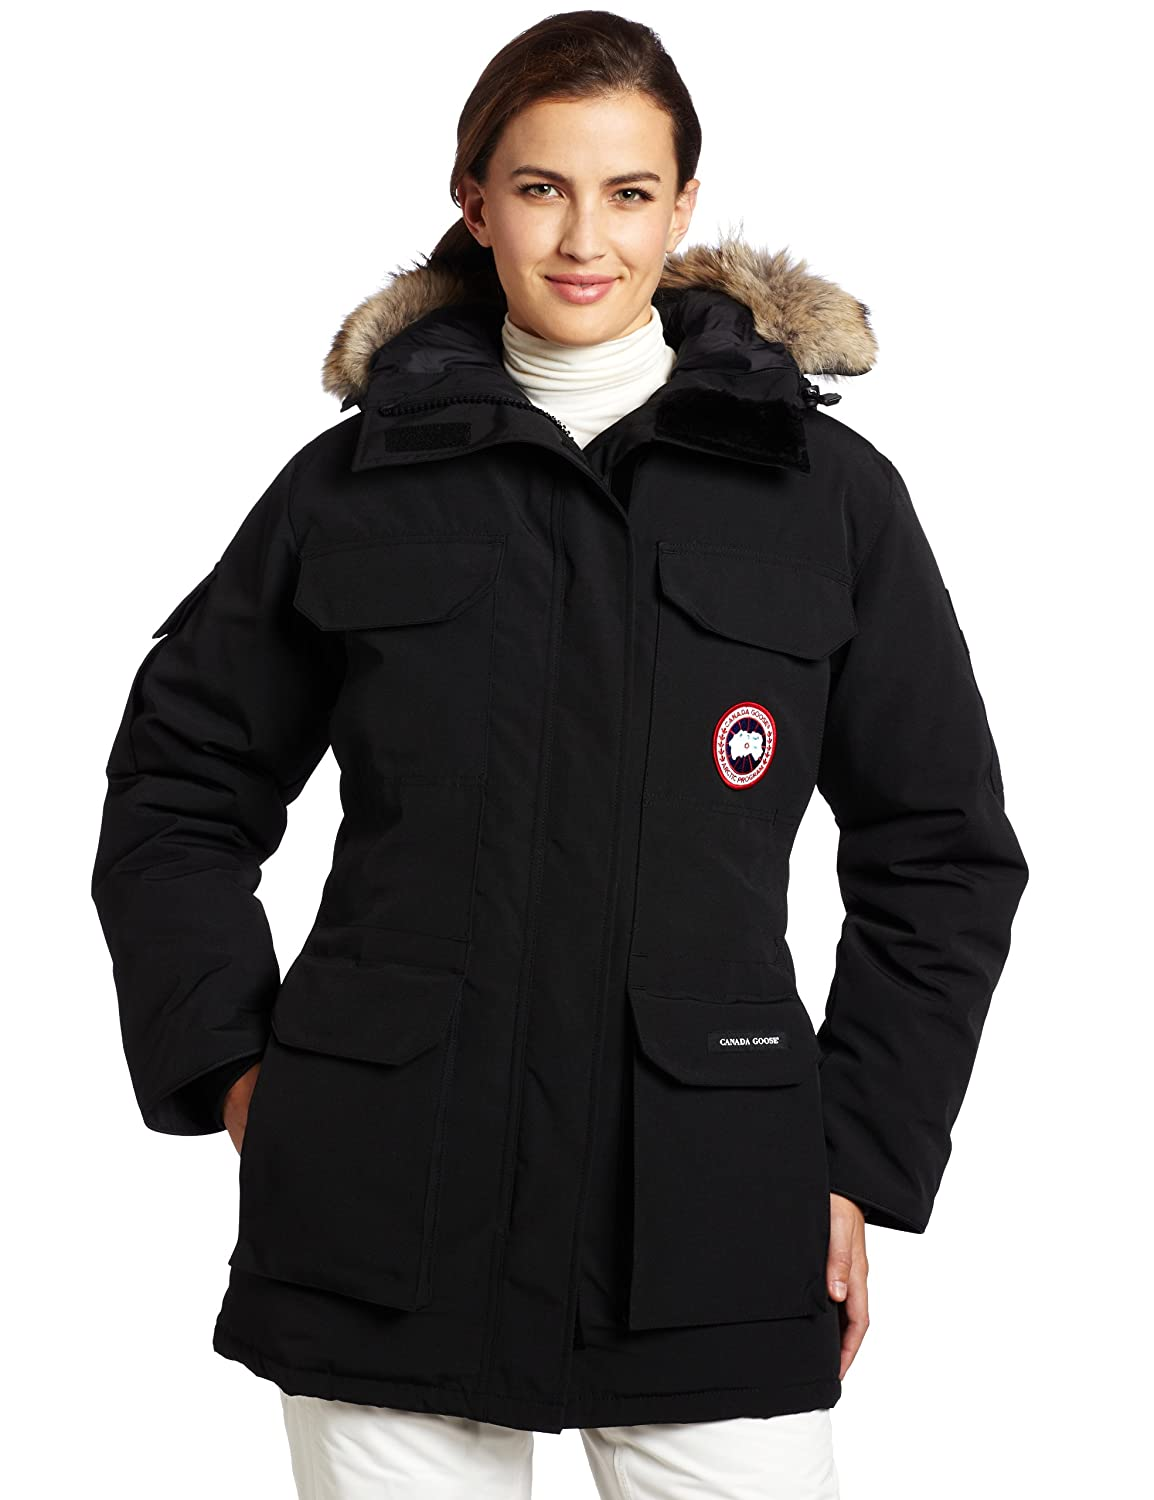 7ab6cfffb876 Amazon.com  Canada Goose Women s Expedition Parka  Clothing